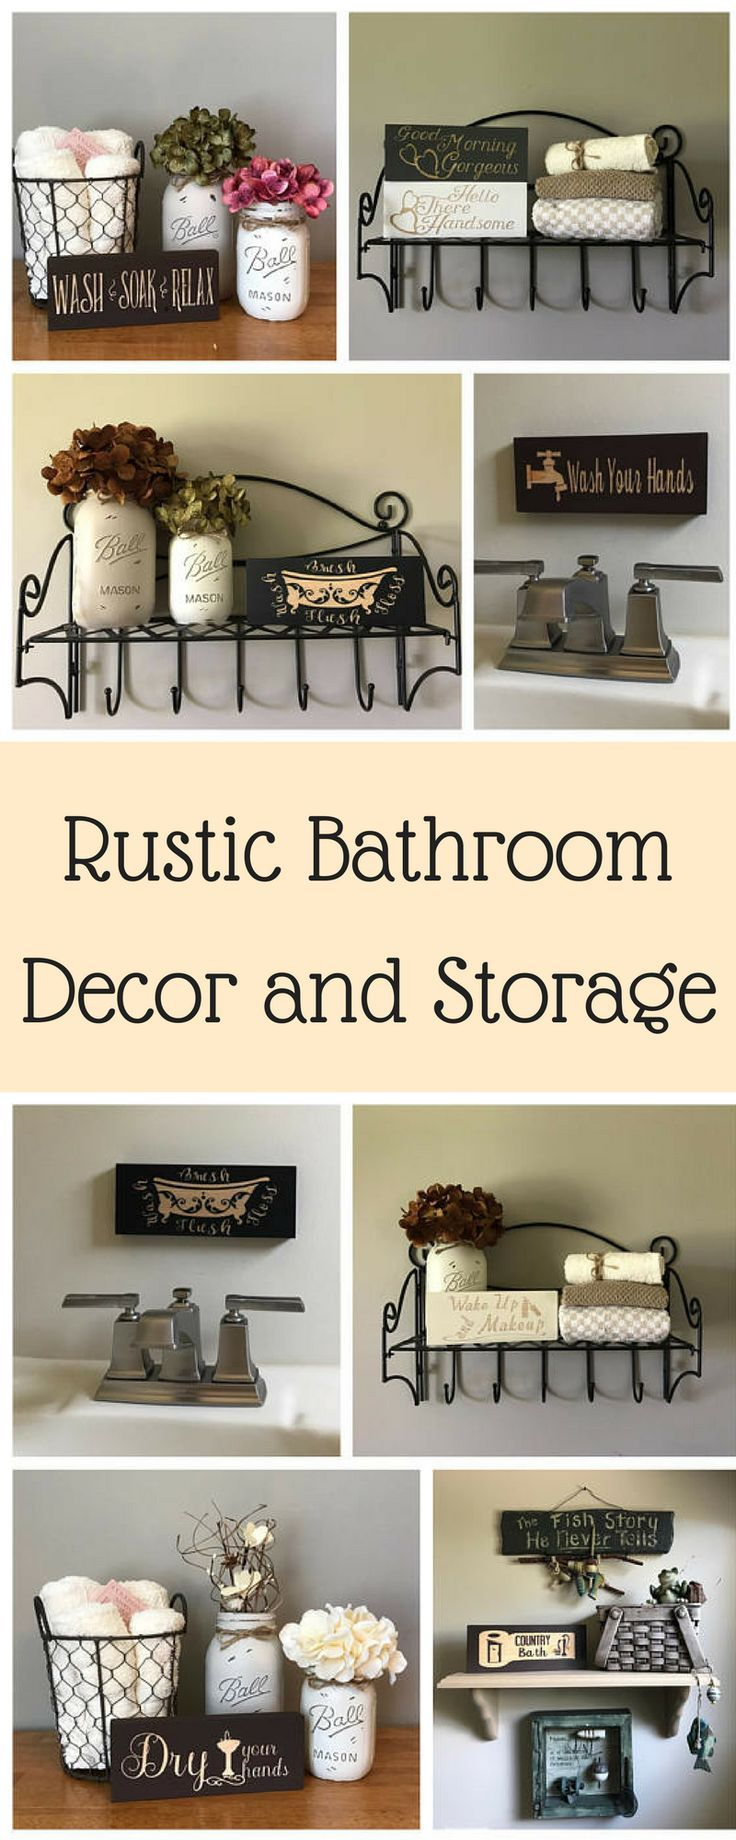 Perfect bathroom decor and storage ideas! I have such a small ...